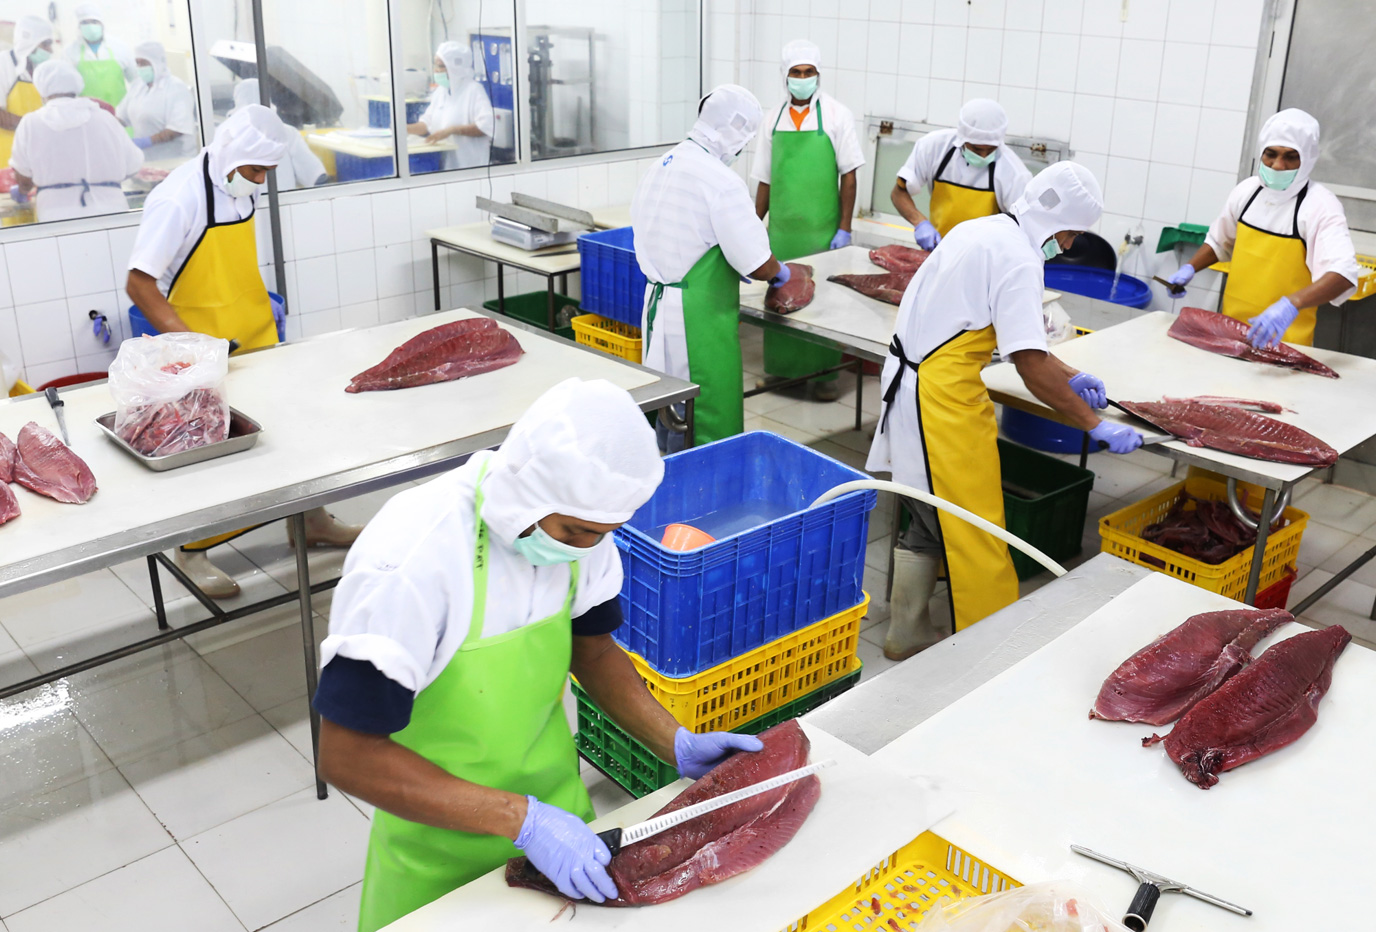 Yellowfin Tuna Processing (Trimming)